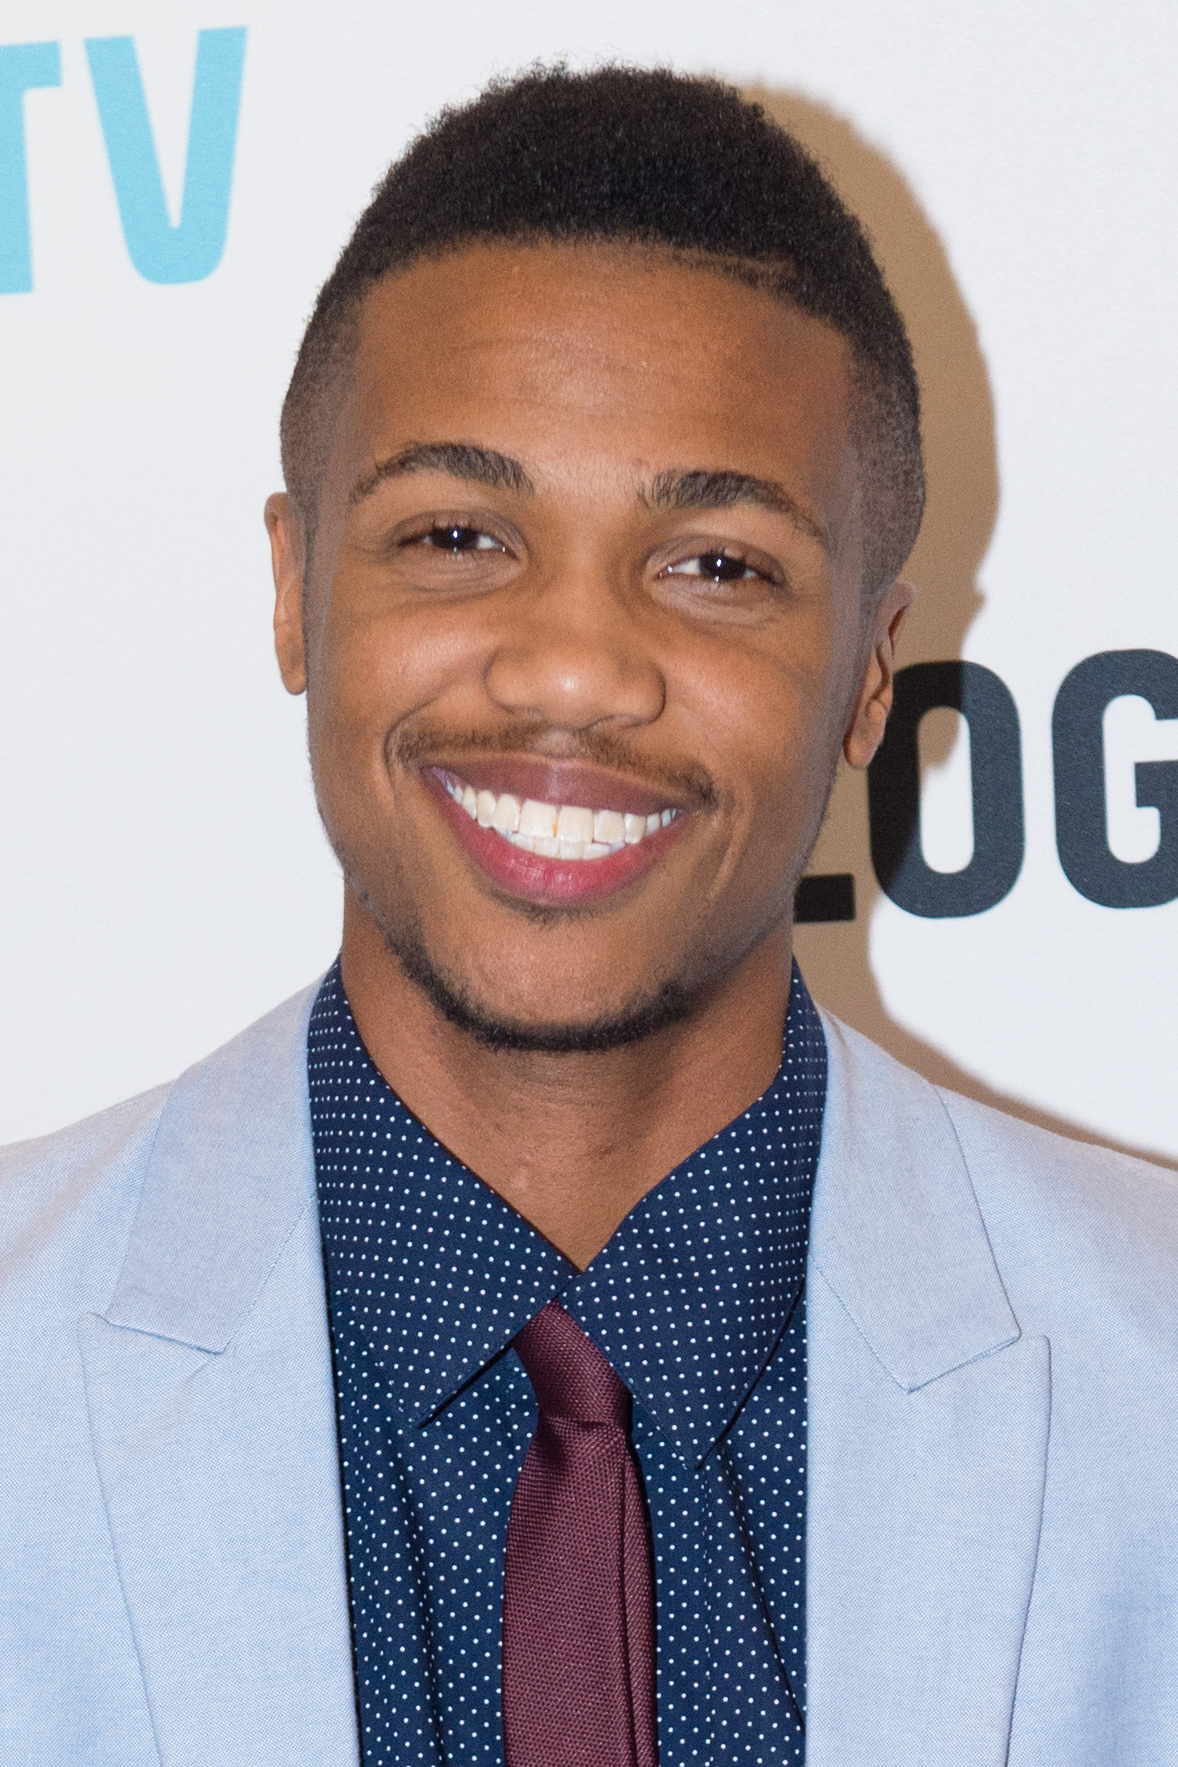 Kye Allums attends the premiere screening of the MTV and Logo TV documentary  Laverne Cox Presents: The T Word  at the Paramount Screening Room on Thursday, Oct. 16, 2014, in New York.